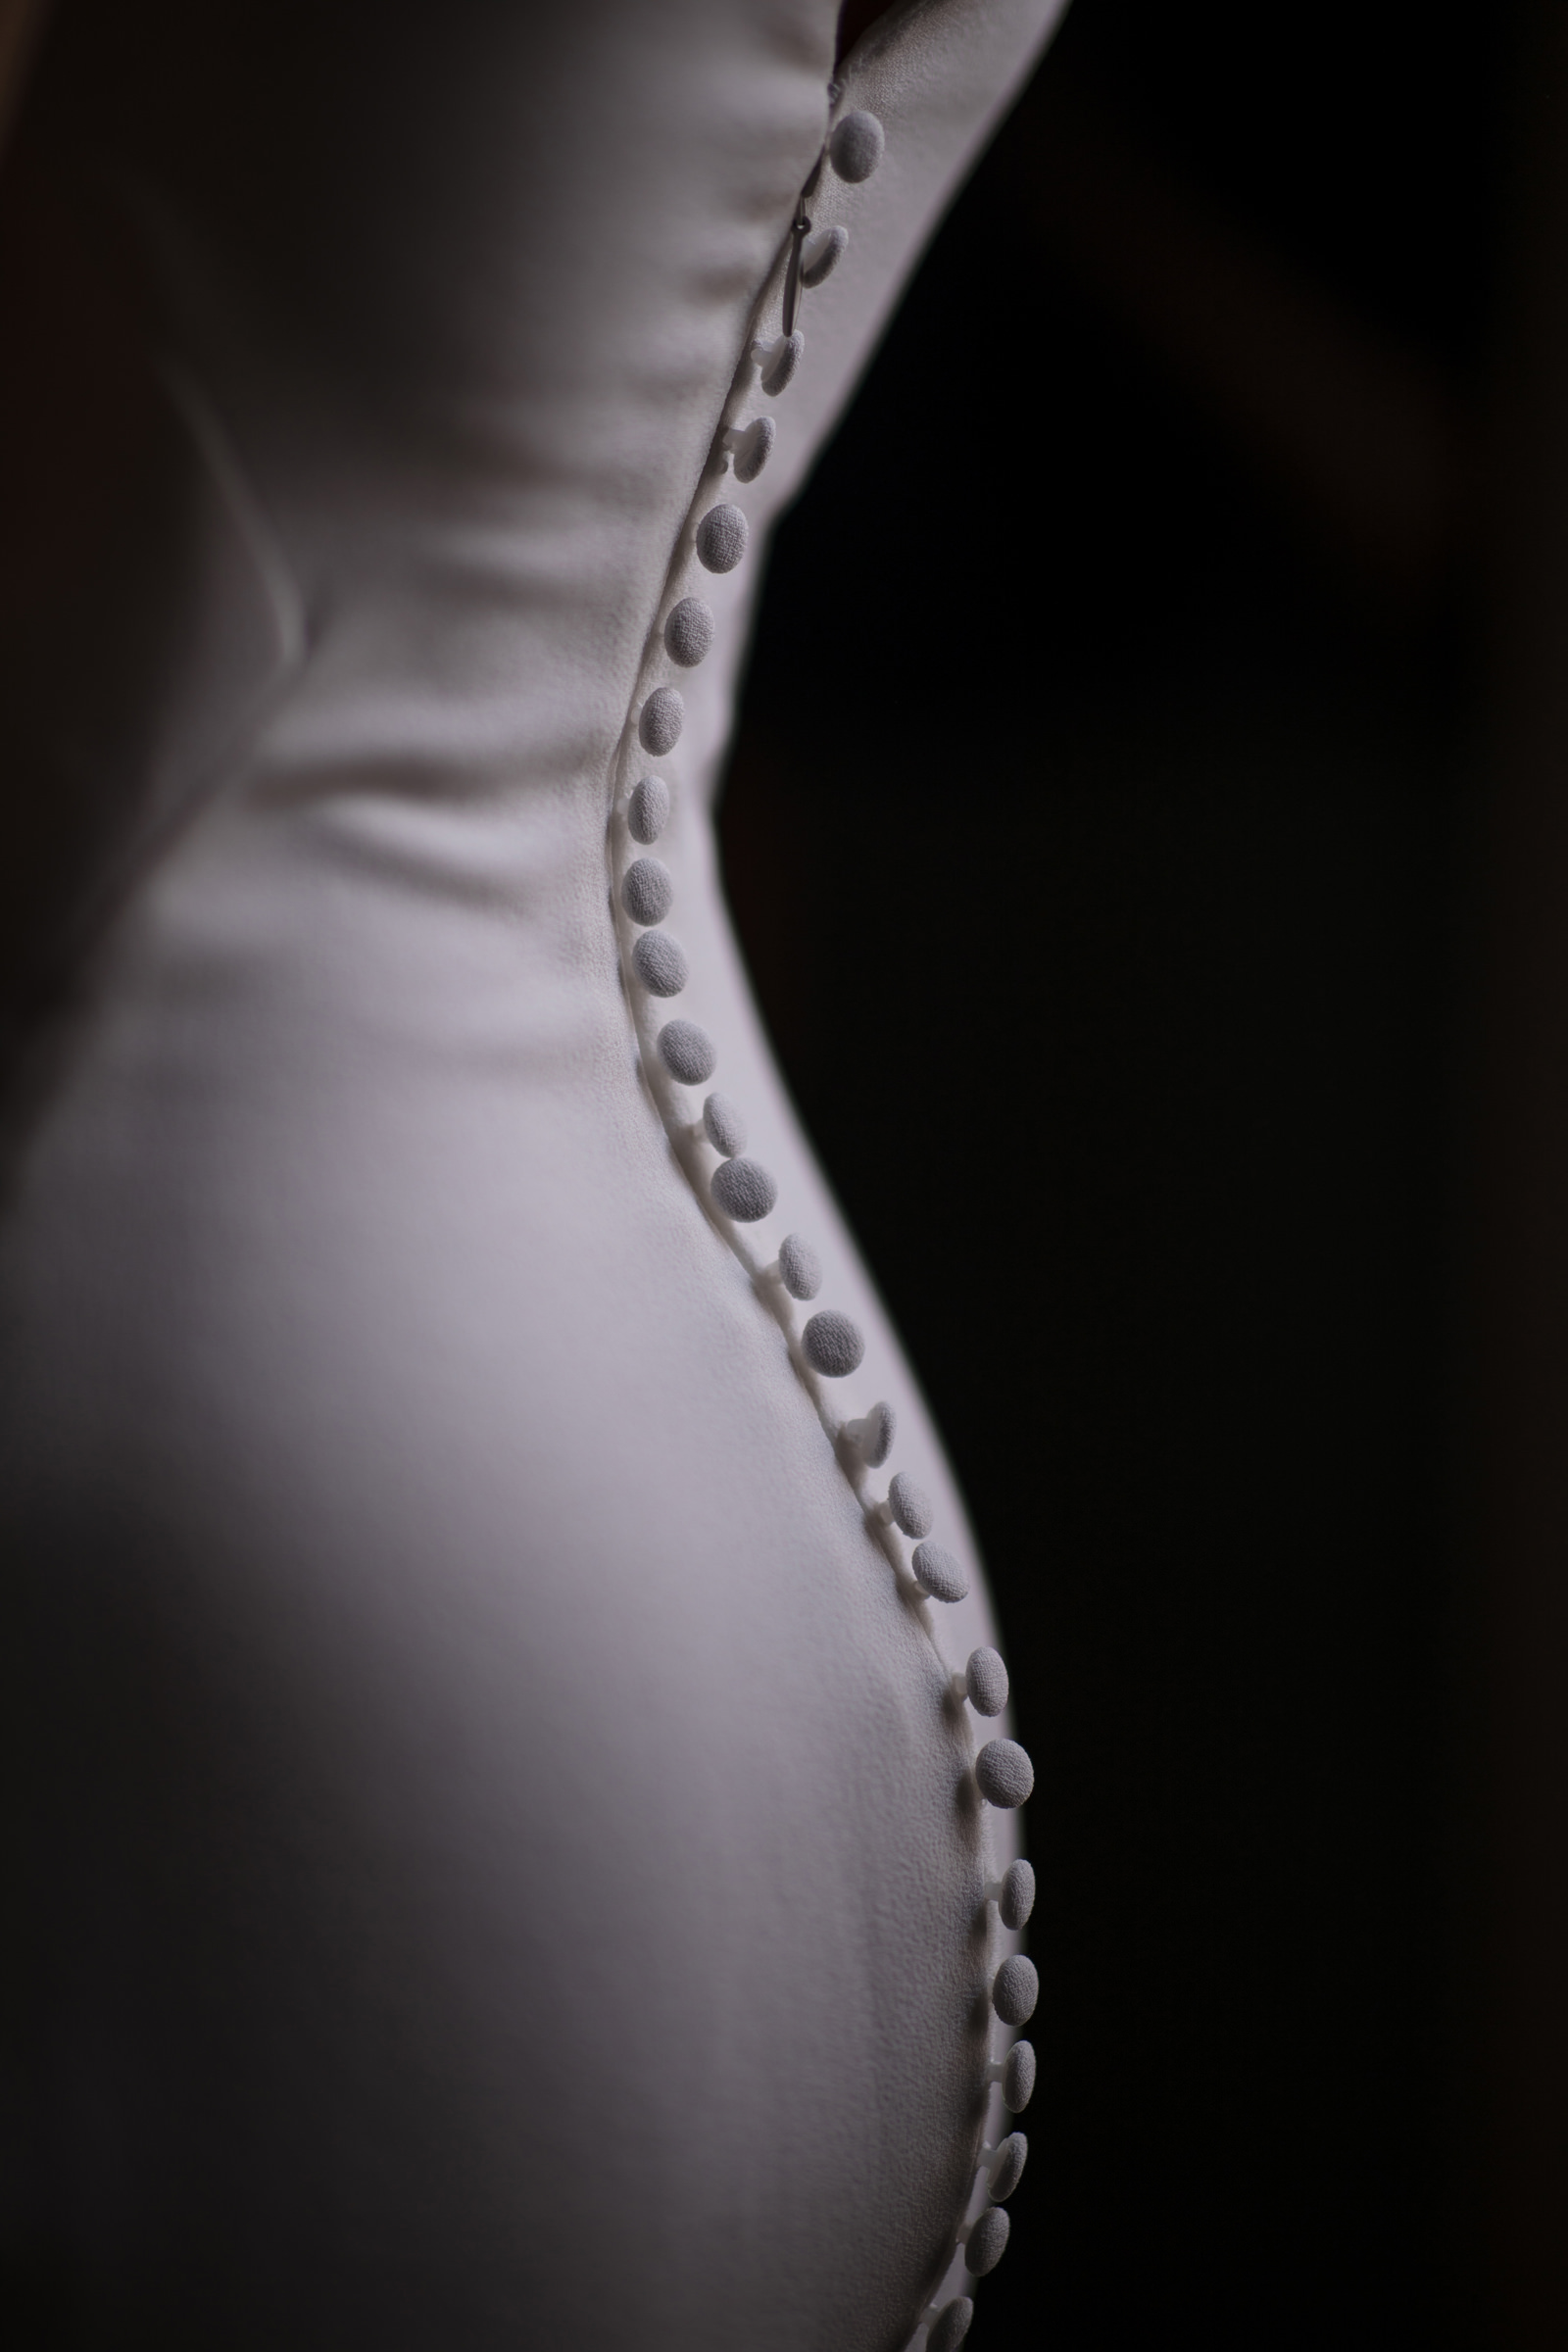 Sexy intricate buttons shot of back of wedding gown, by Susan Stripling